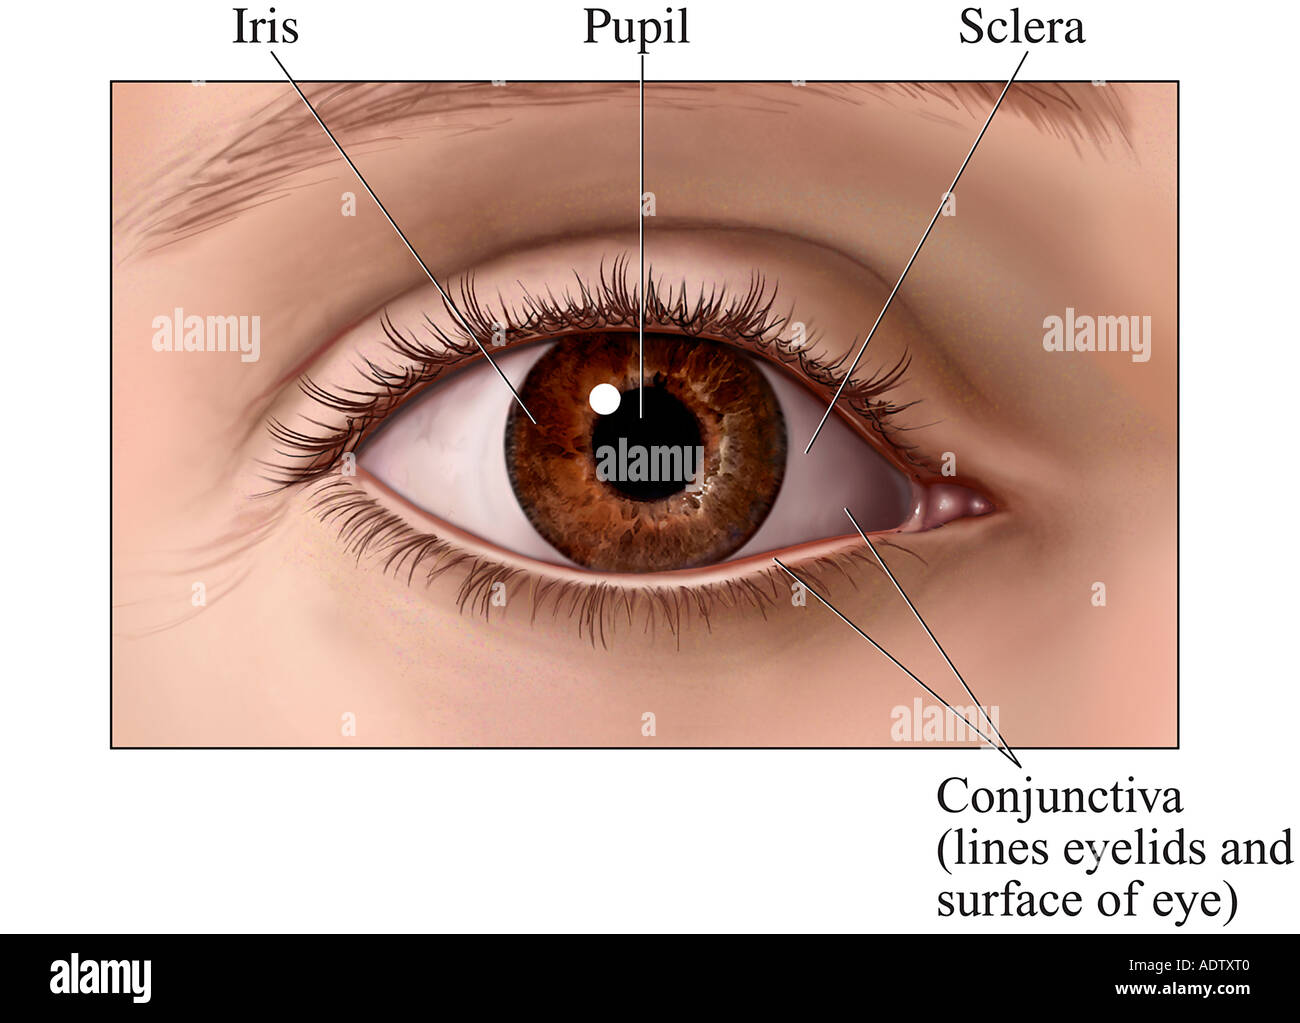 Anterior (Front) View of the Eye - Stock Image